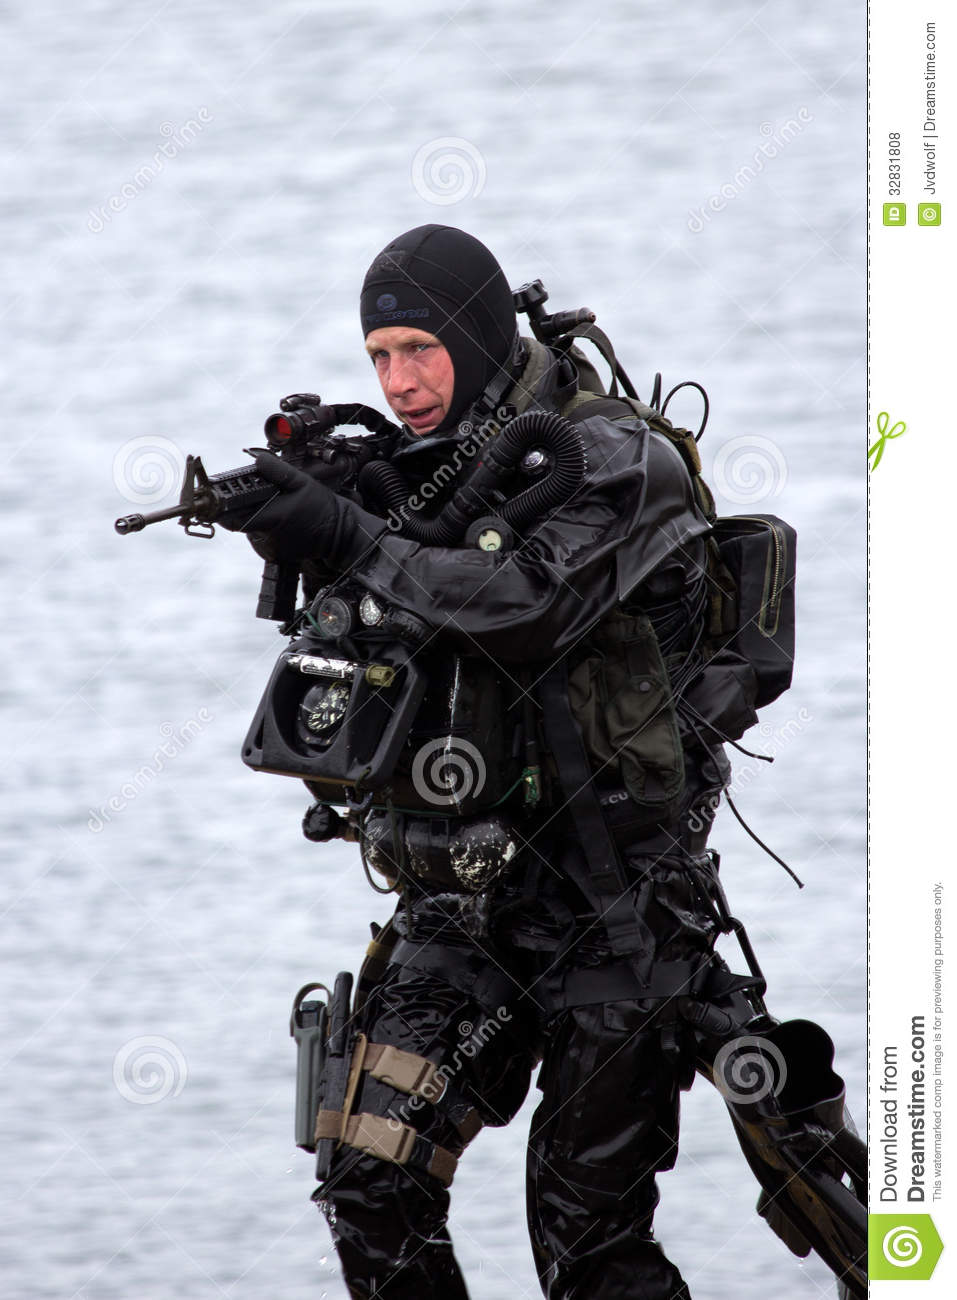 tactical scuba diving wallpaper - photo #18